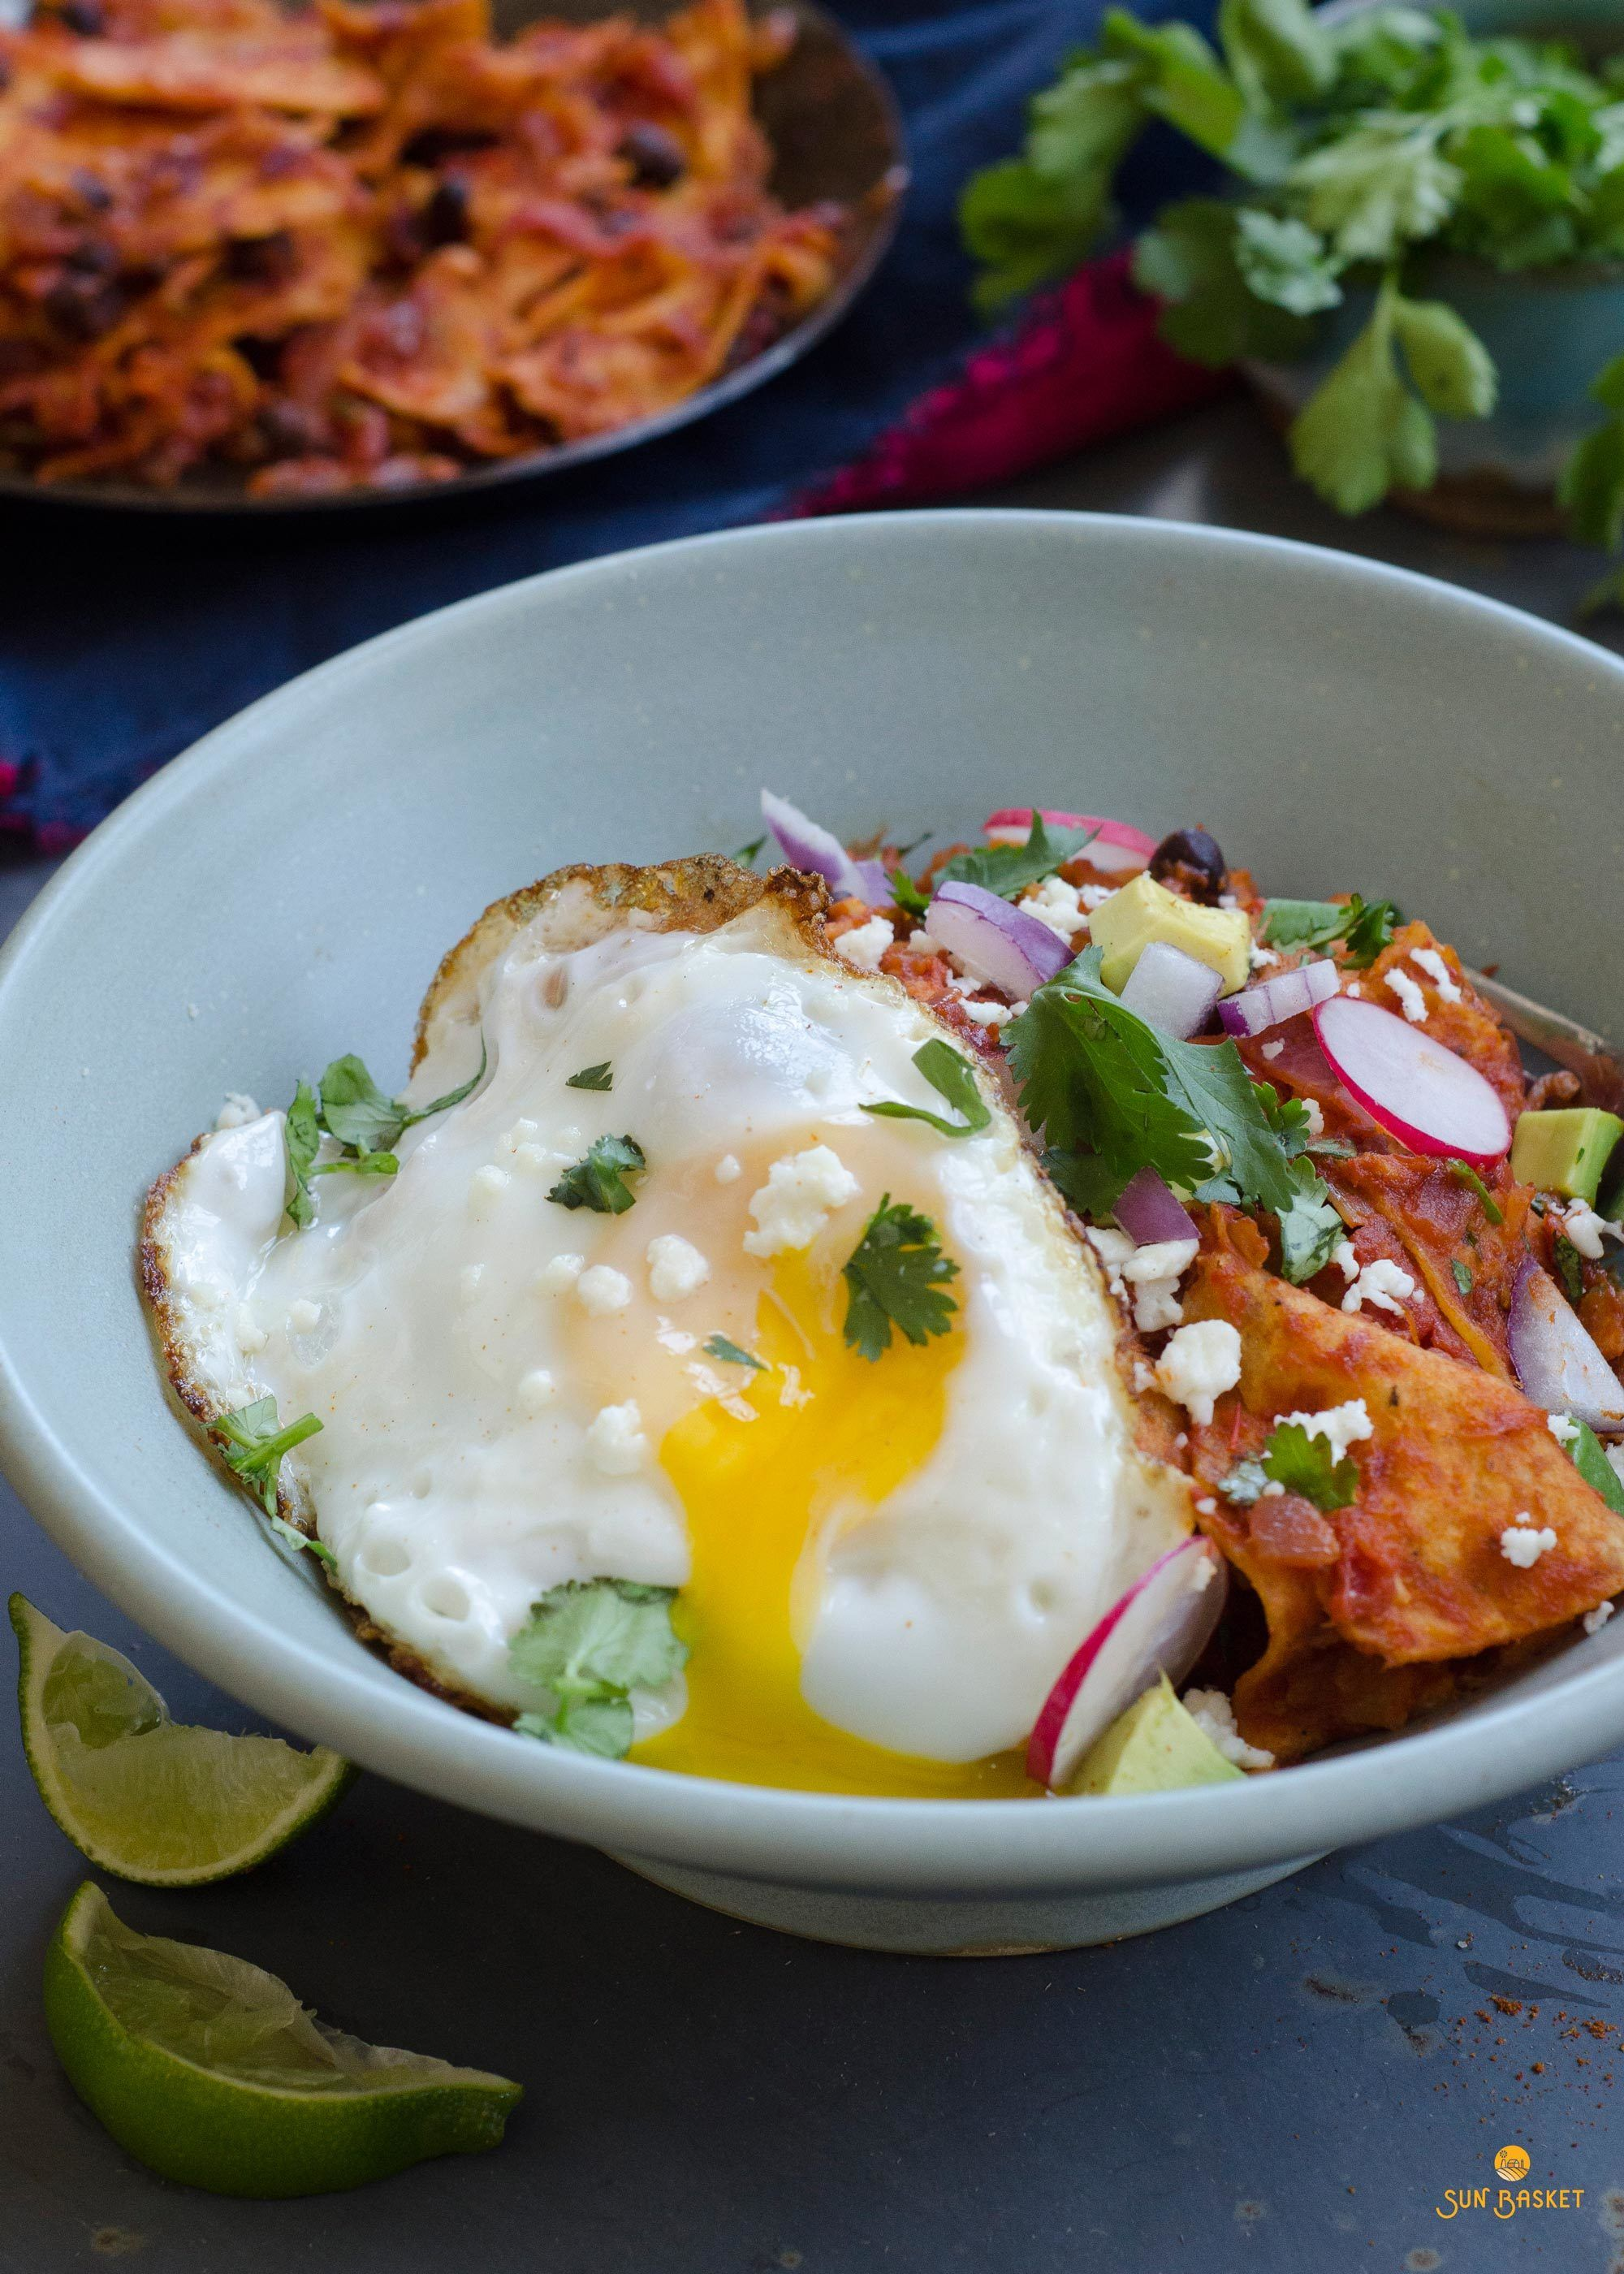 Chipotle chilaquiles with black beans | Recipe | Sunbasket ...